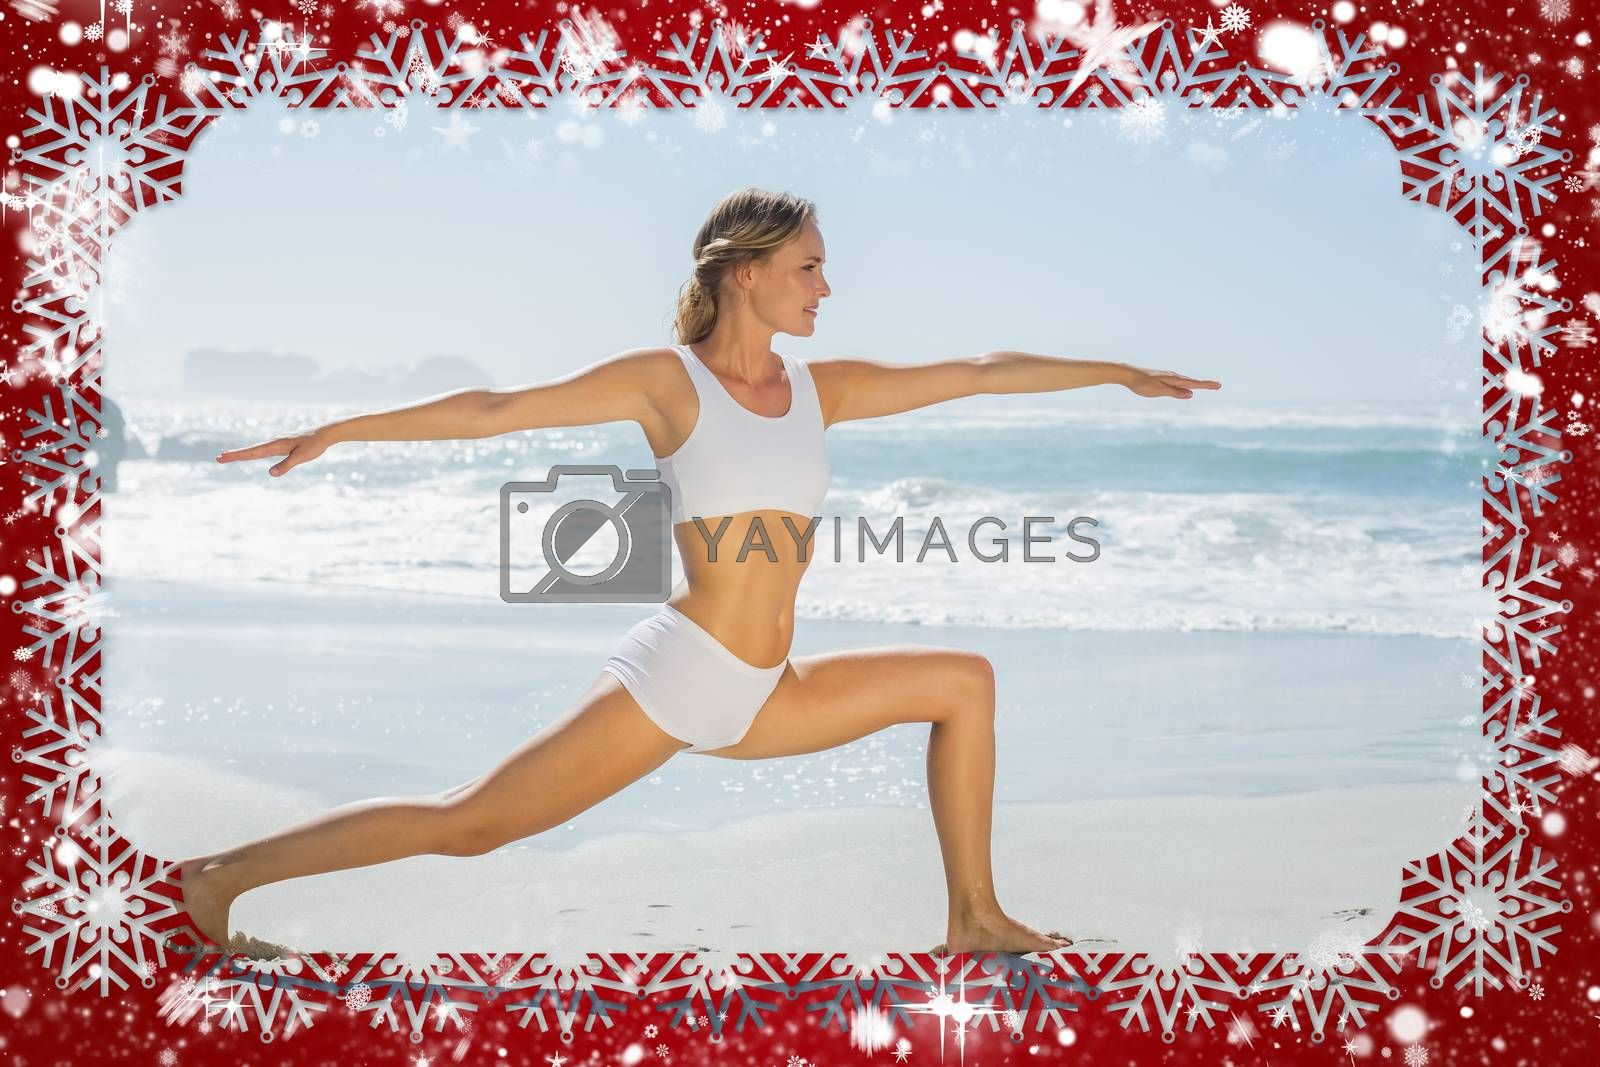 Gorgeous blonde in warrior pose by the sea against snow